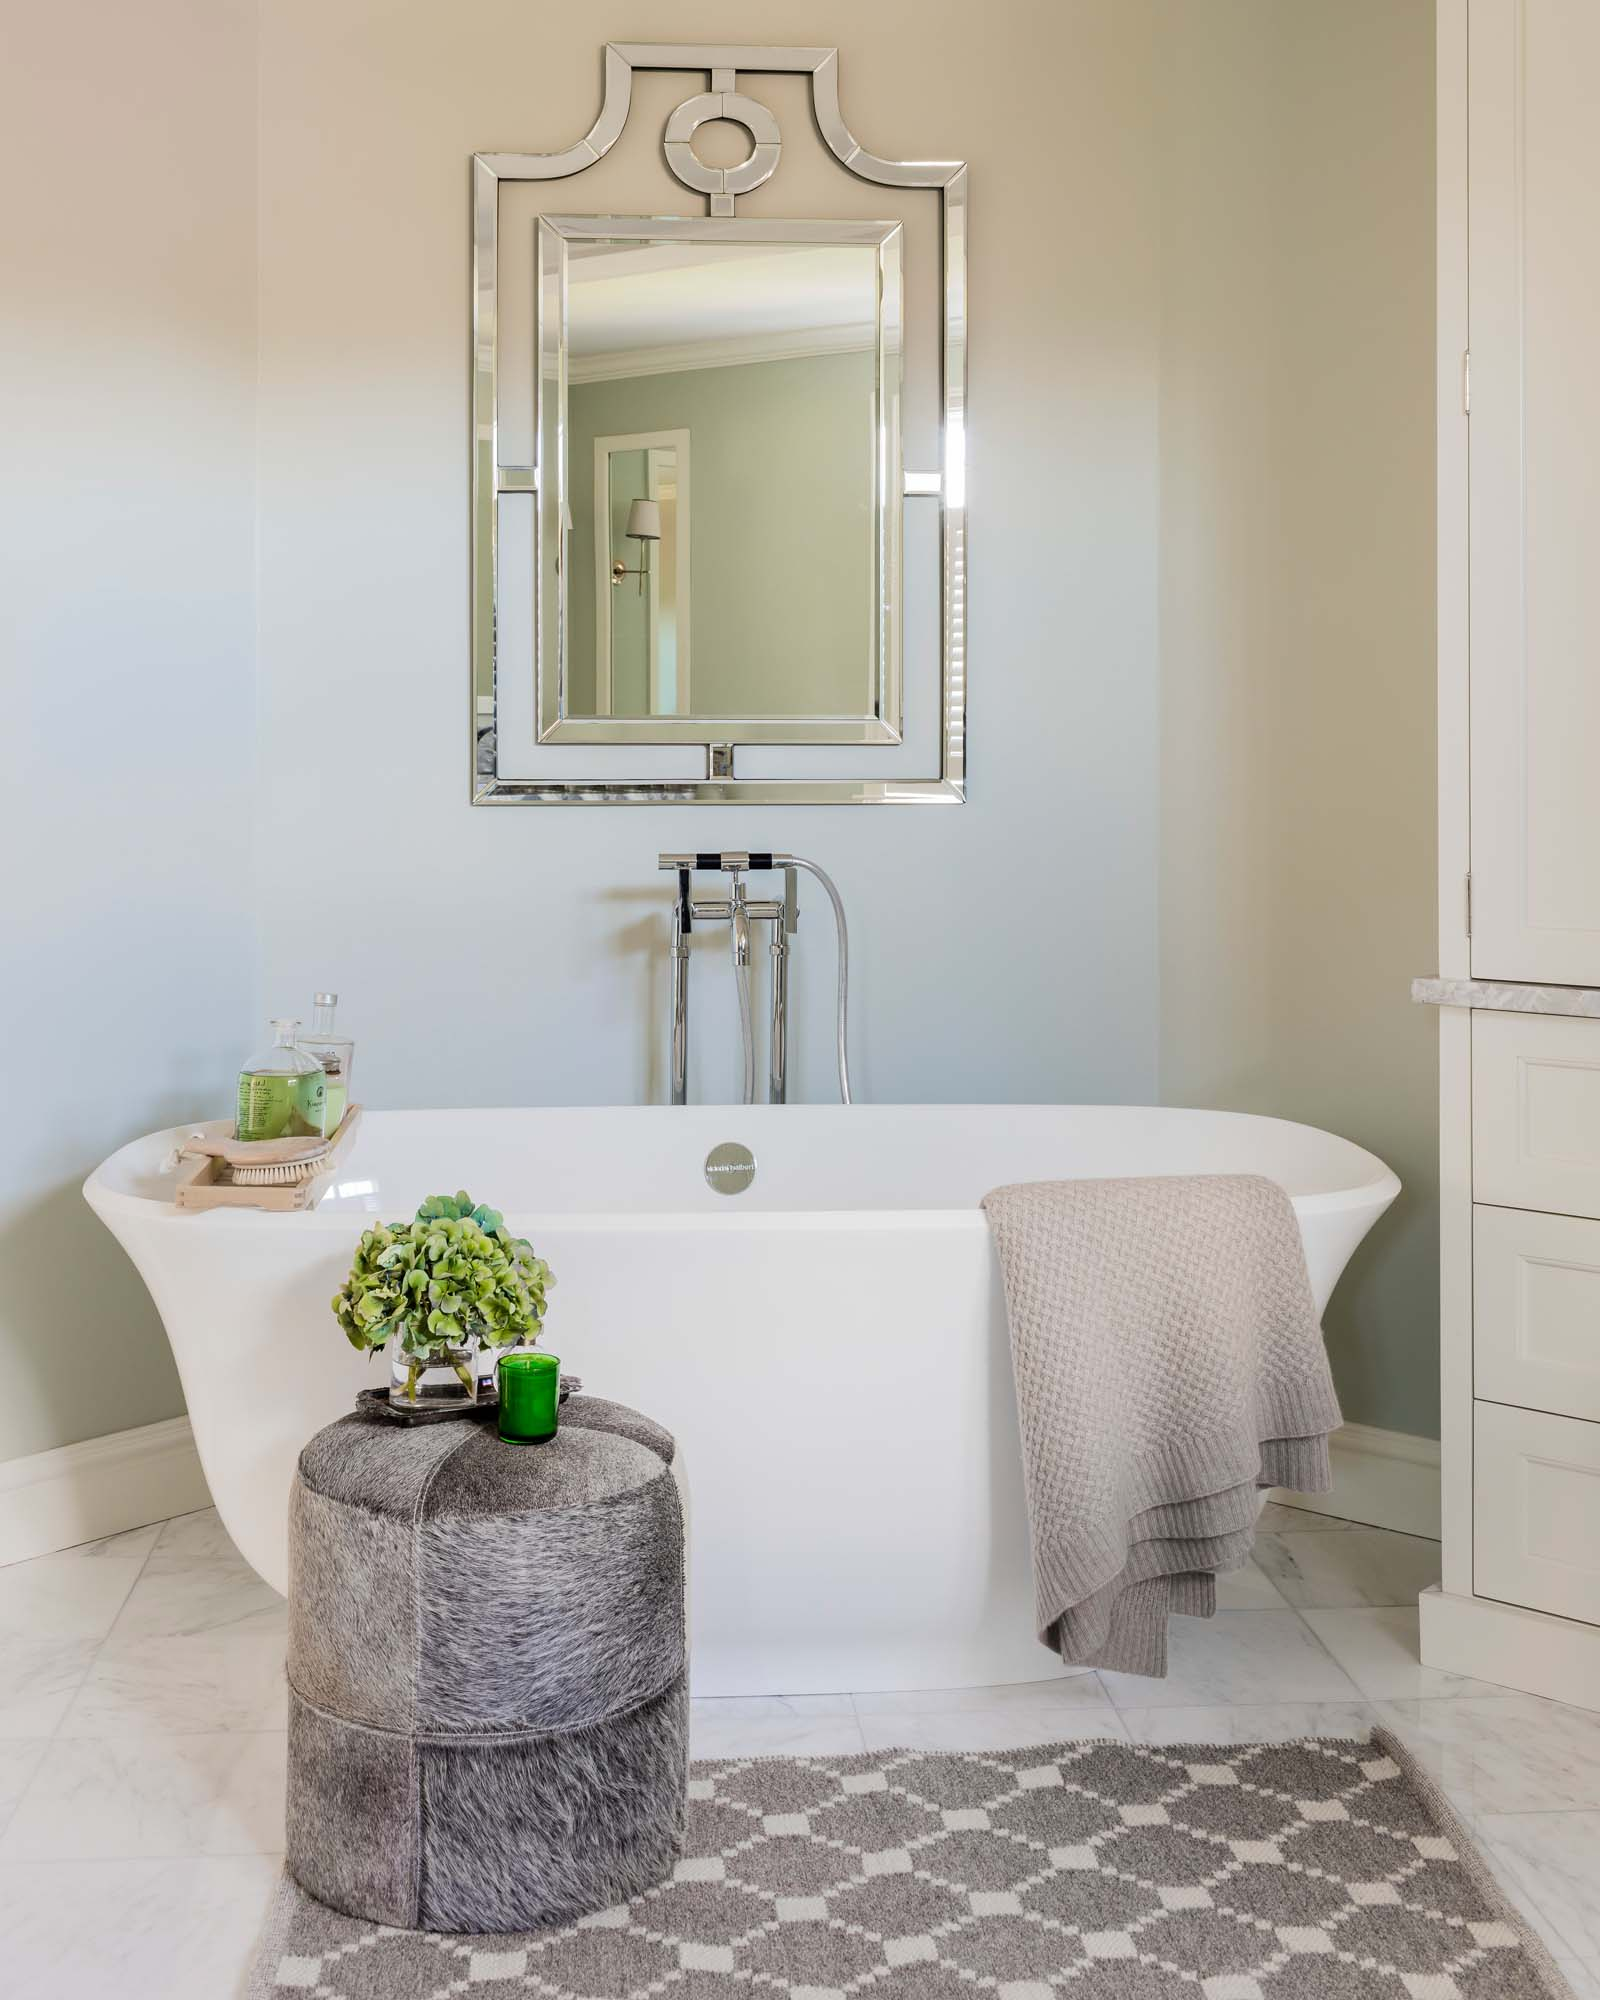 Bathroom with white bathtub and mirror, sherwin williams, pearl gray, green wall, rohl faucet, cashmere, throw, hide stool, stool, leather, arebescato, marble, arebescato marble, 12 inch